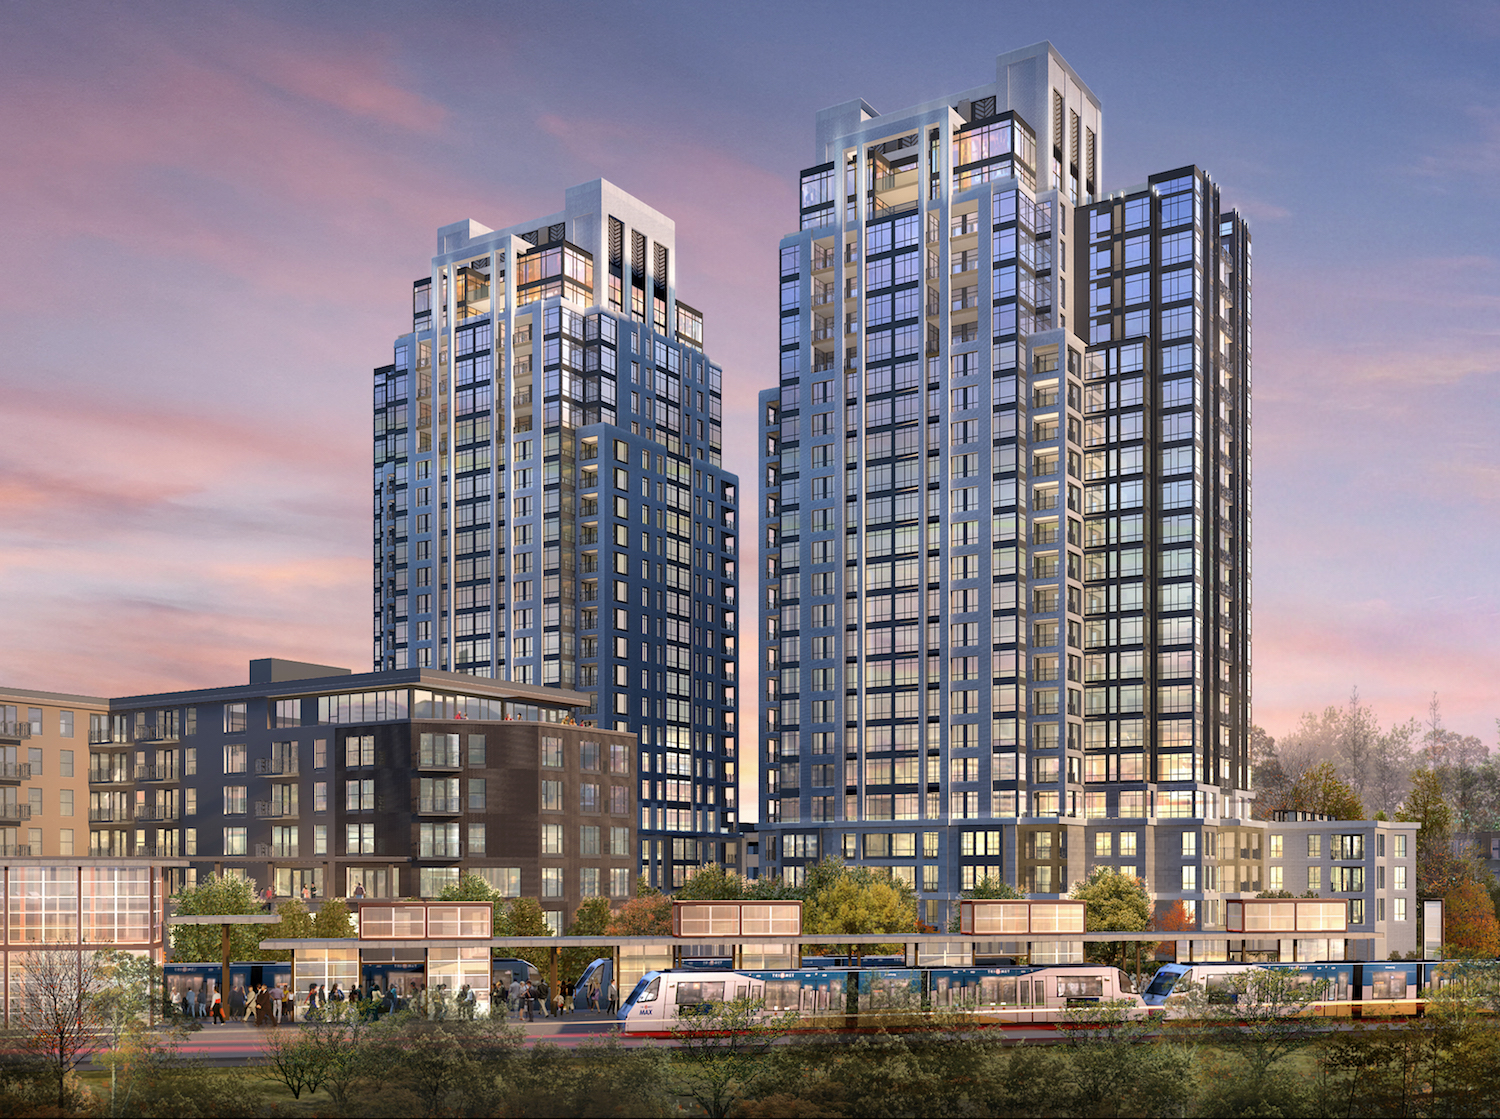 The Calhoun Towers project will include four new buildings with 744 new apartment units adjacent to the future Southwest Light Rail station in the West Calhoun neighborhood. Rendering courtesy ESG for Bader Development